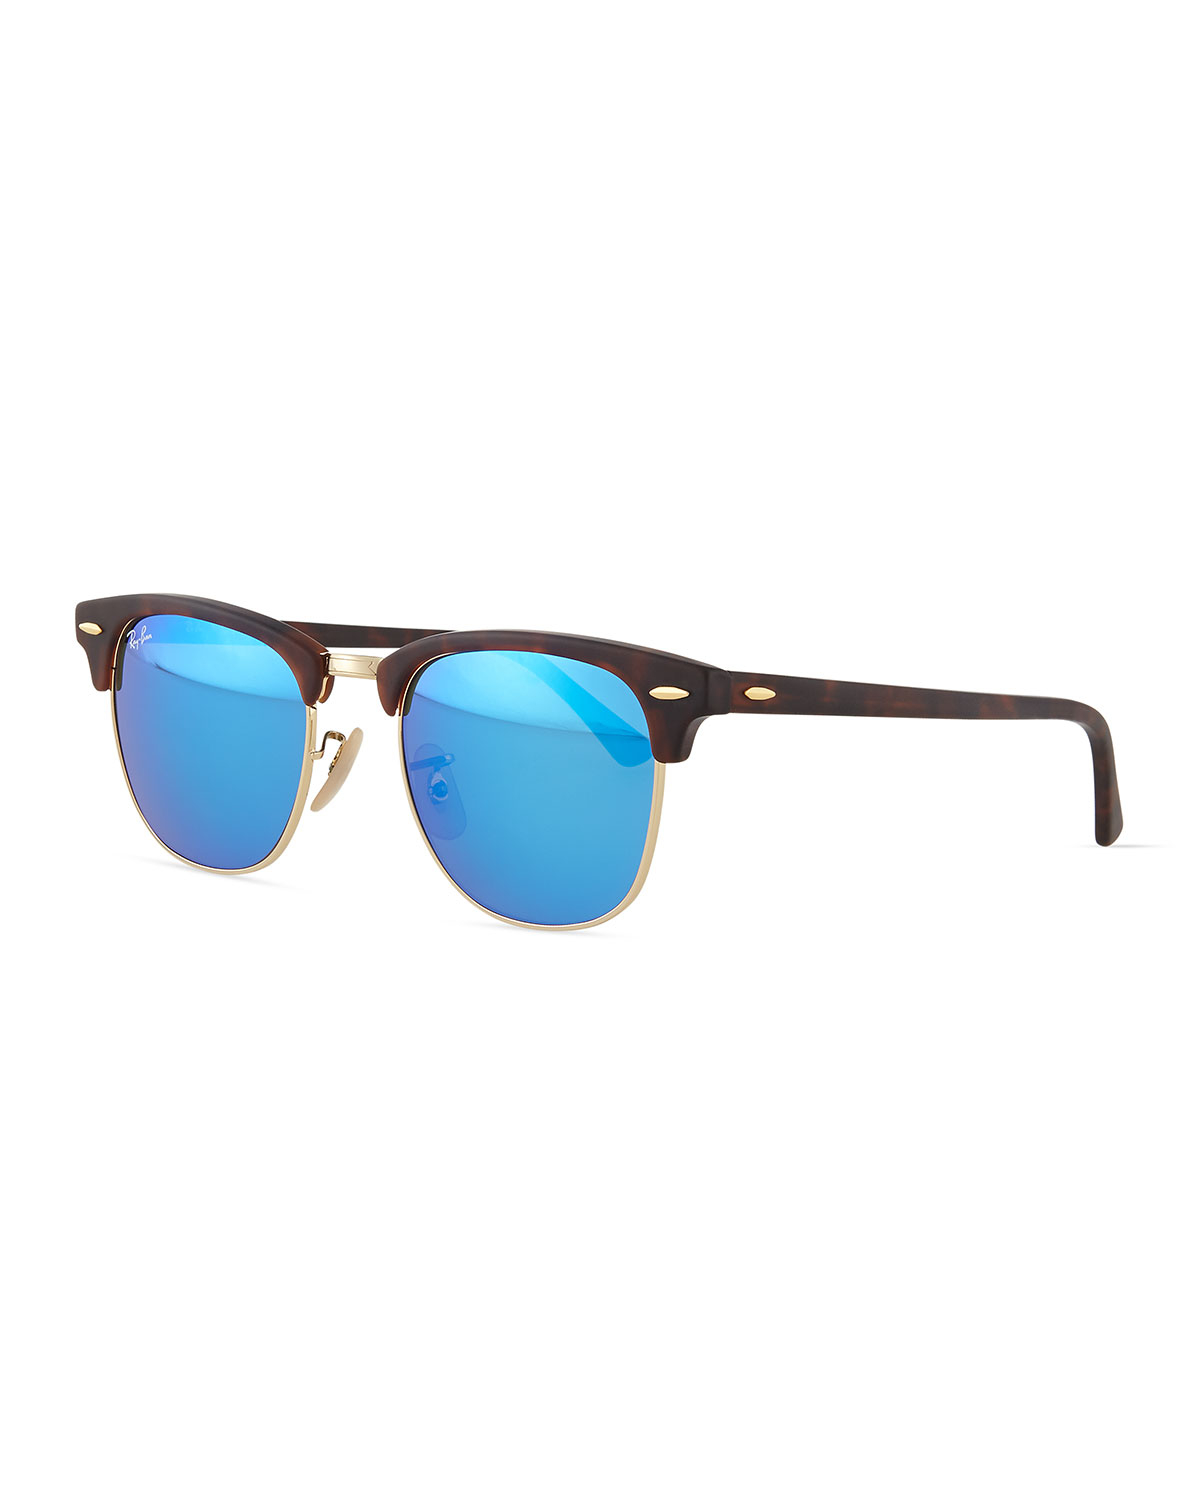 Lyst - Ray-Ban Clubmaster Half-rimmed Sunglasses